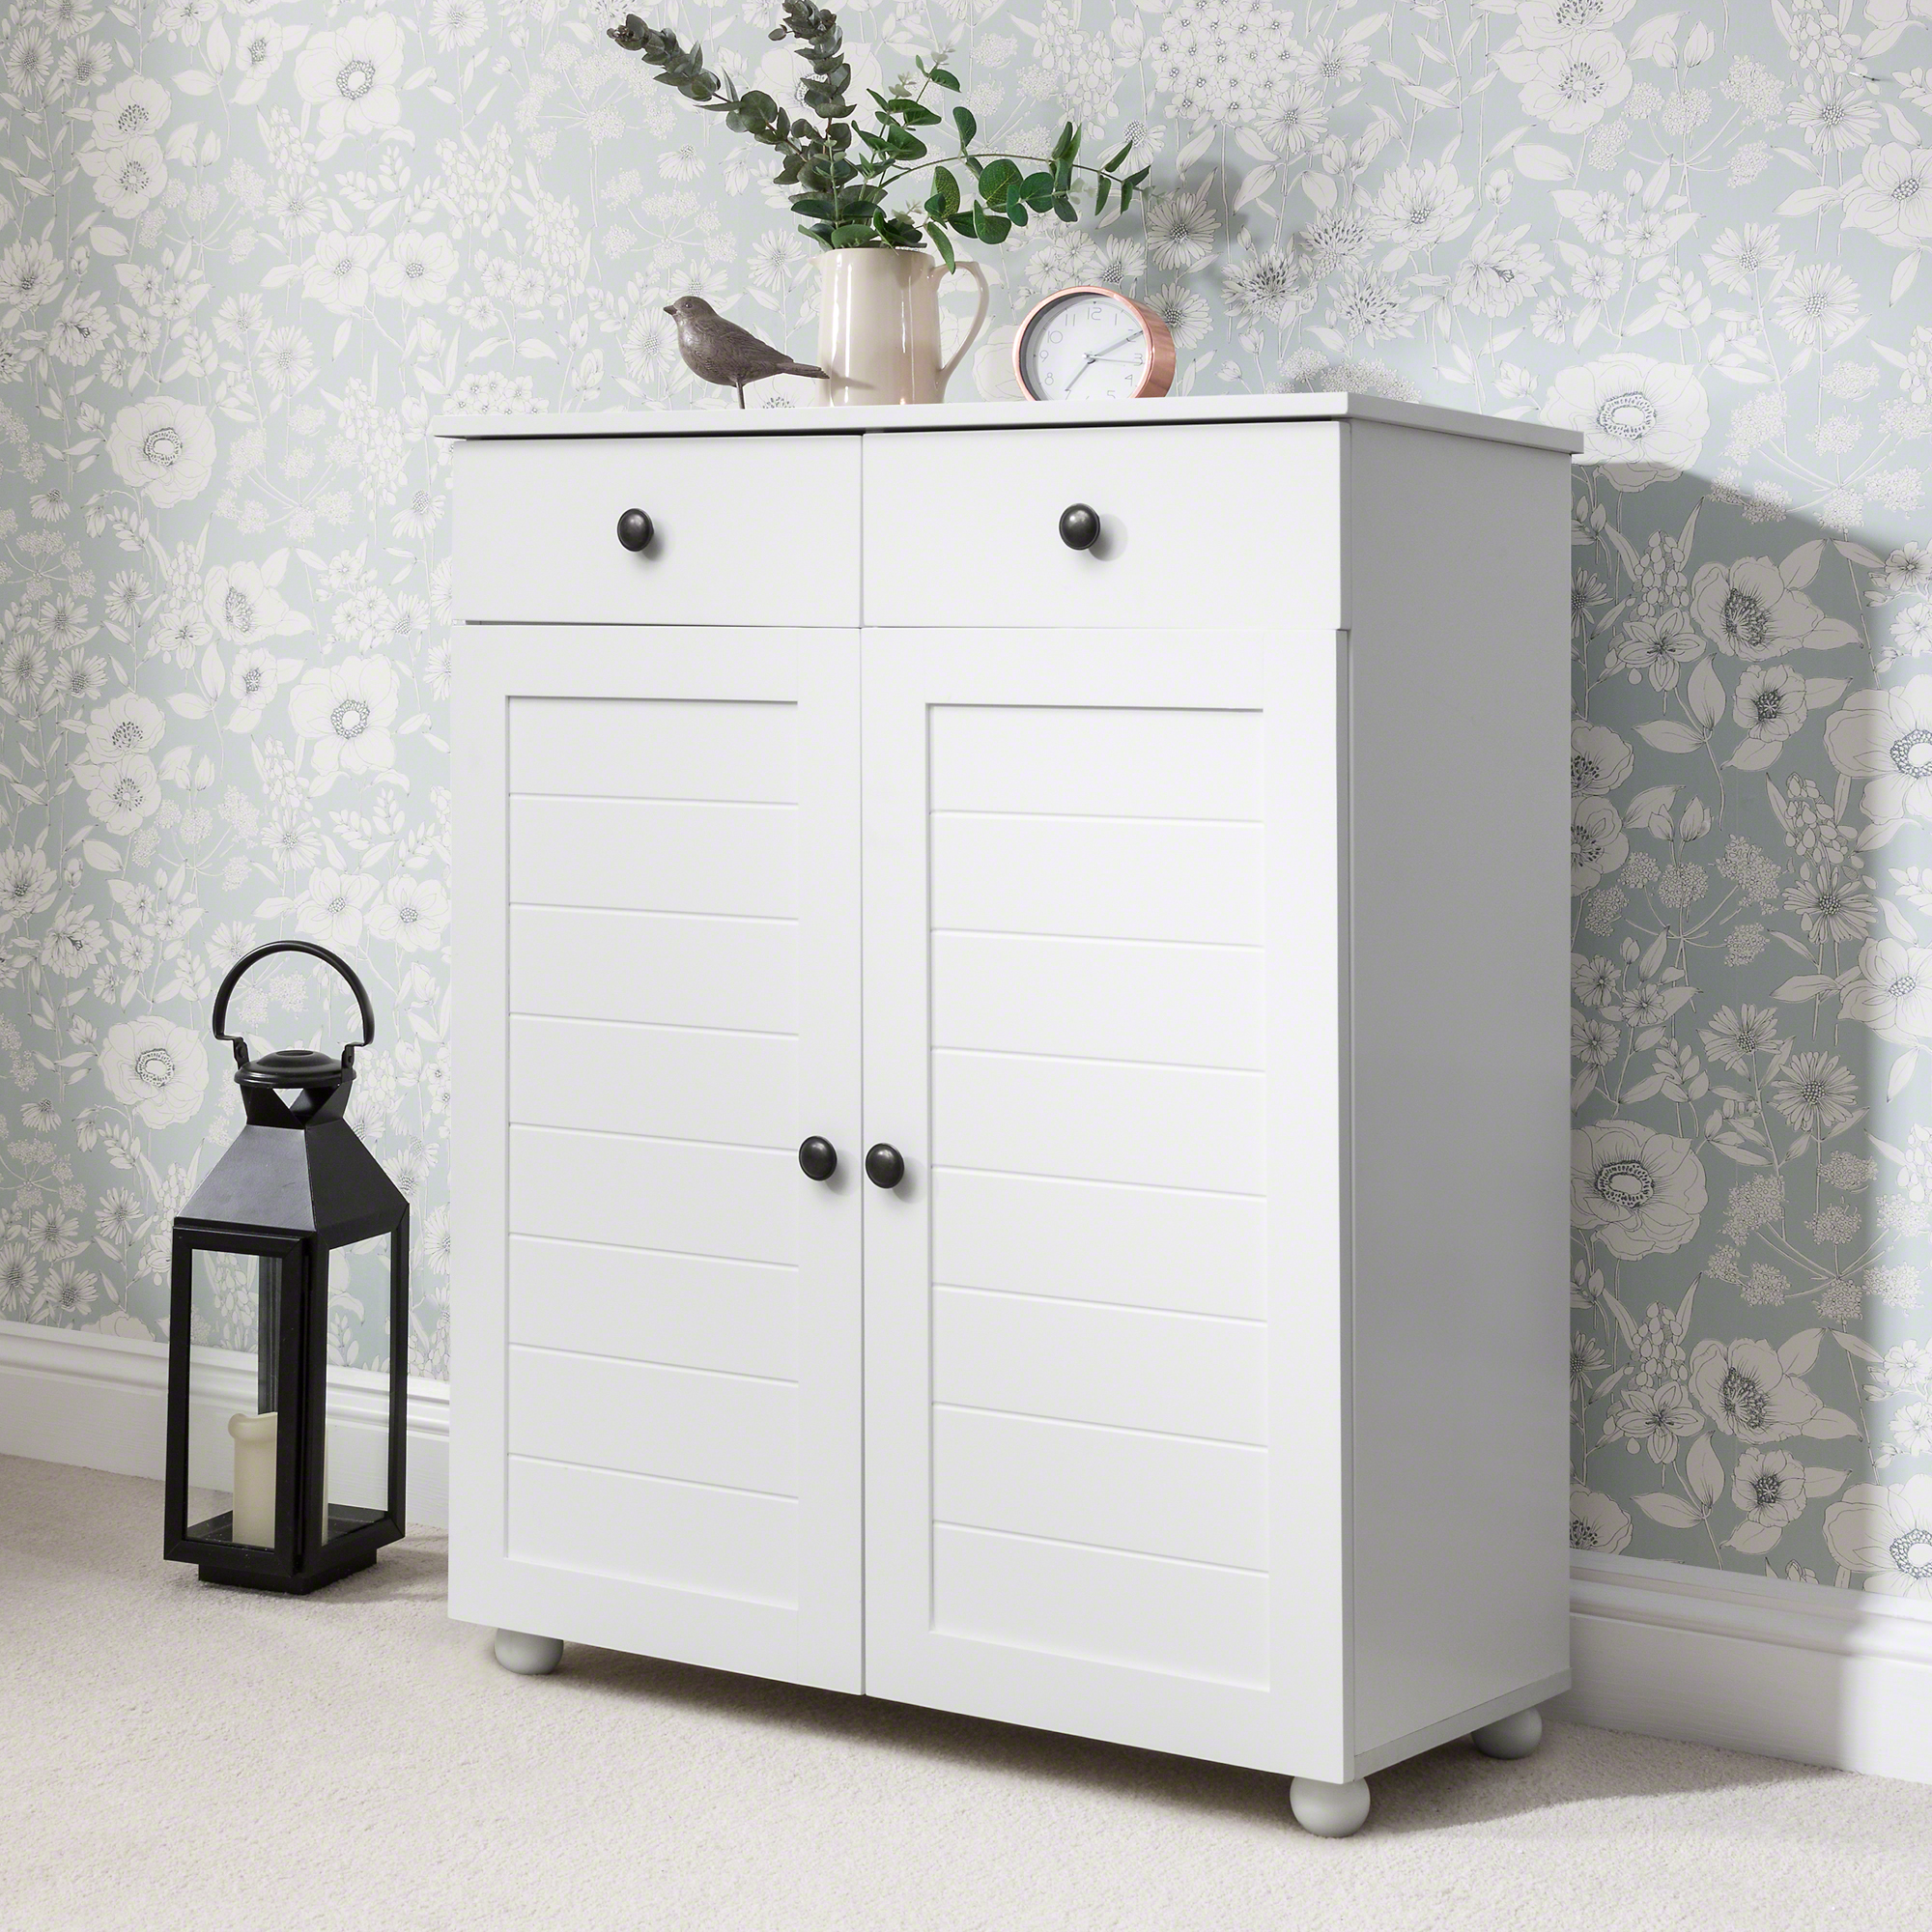 Laura James Shoe Storage Cabinet With Storage Drawers In White